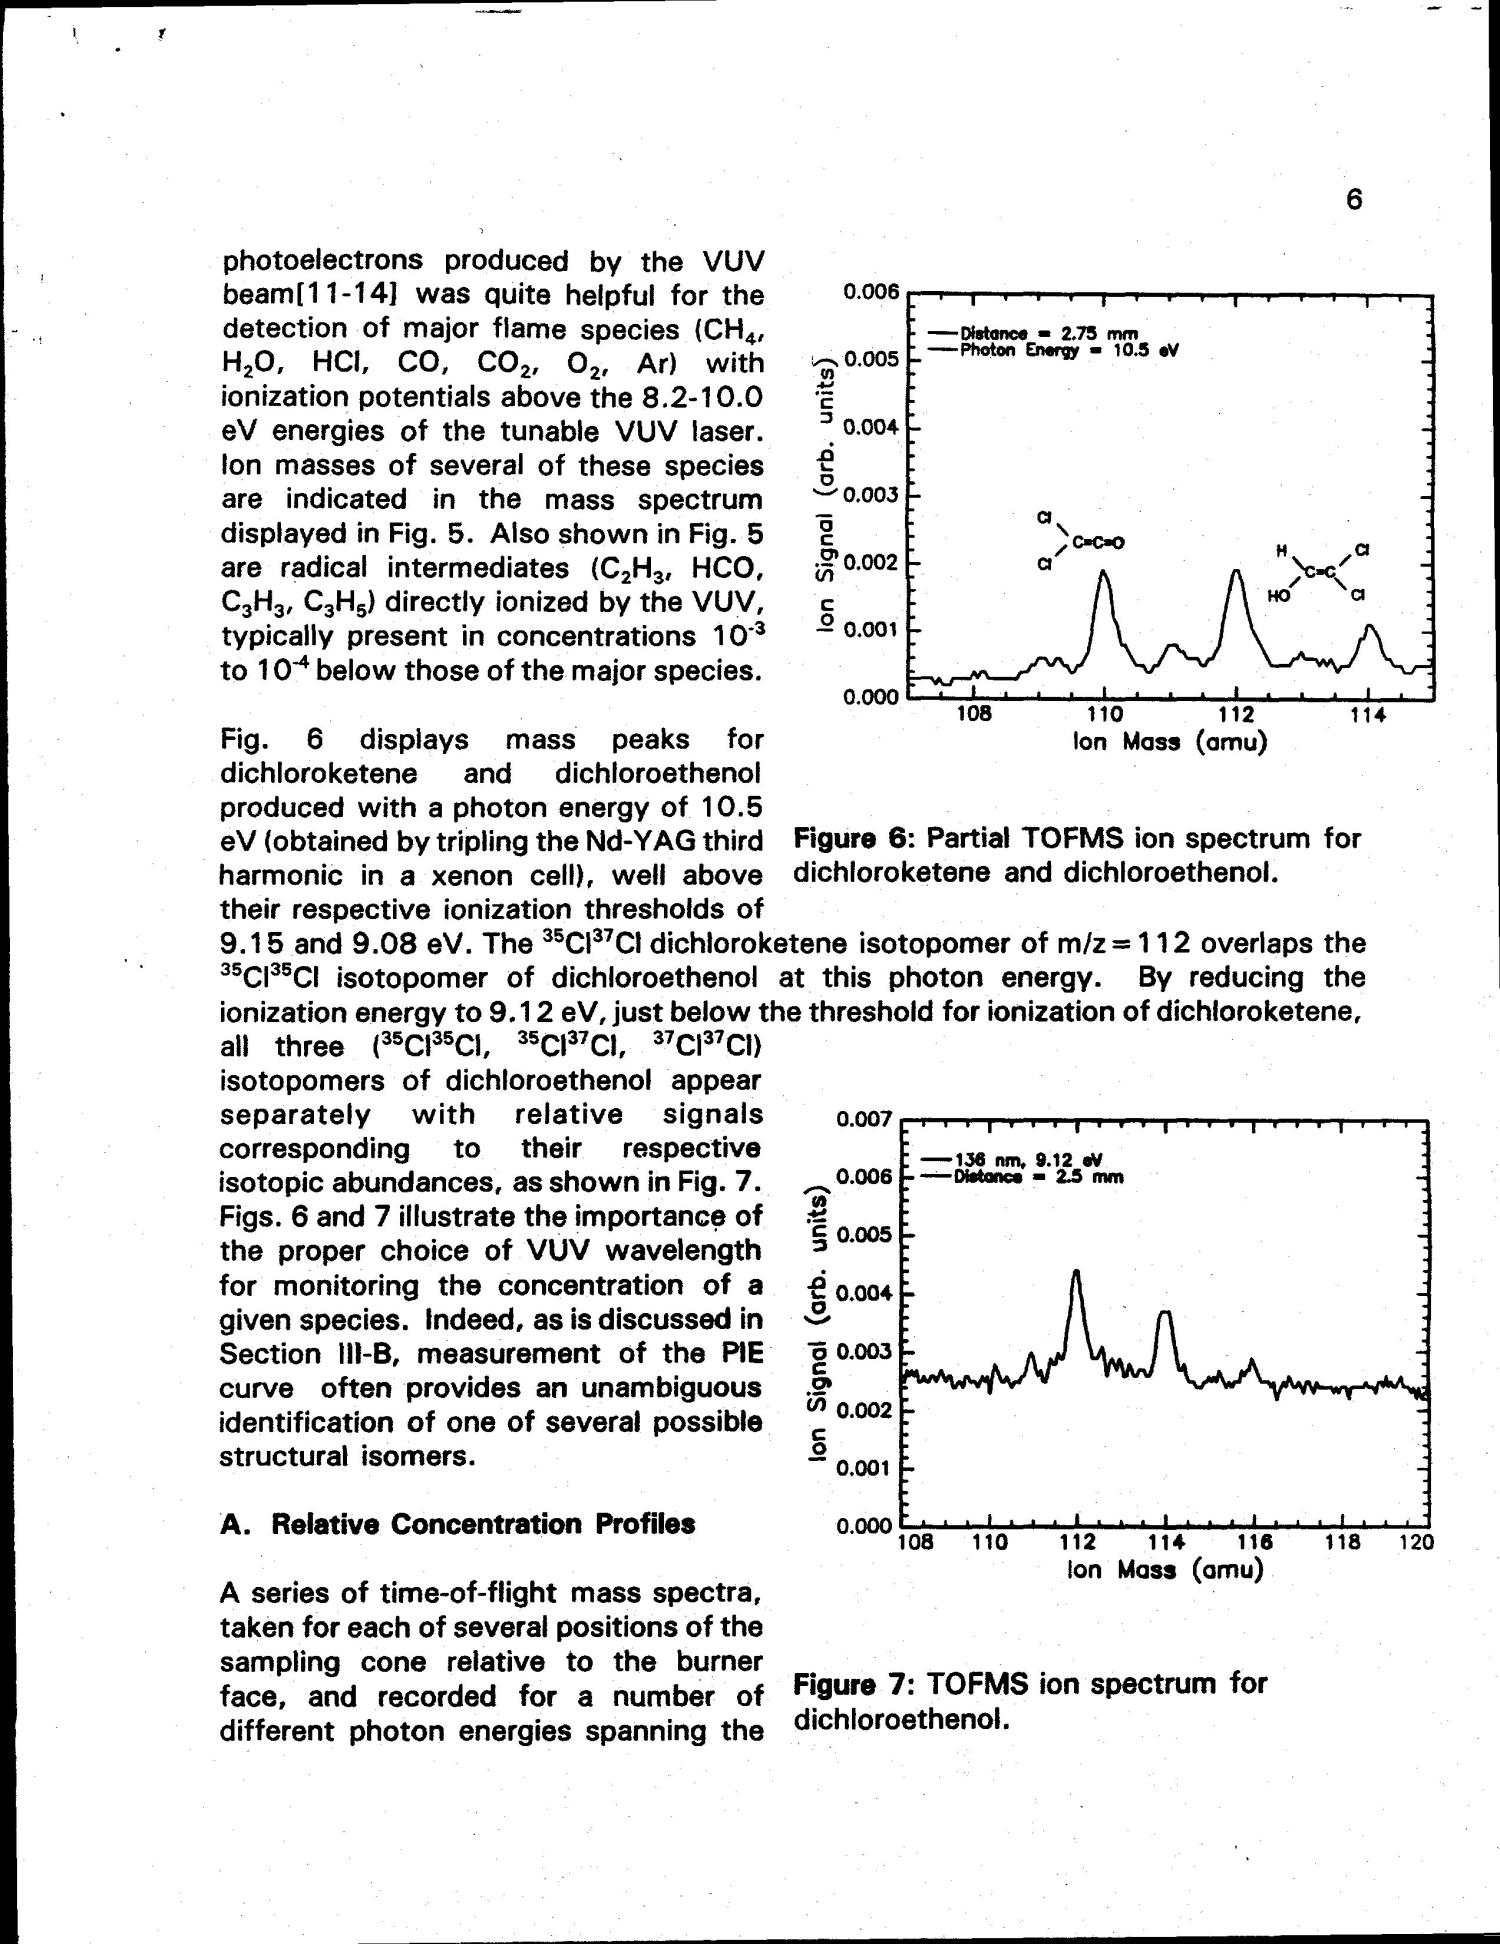 Photoionization mass spectrometry of combustion radicals. Final technical report                                                                                                      [Sequence #]: 9 of 26